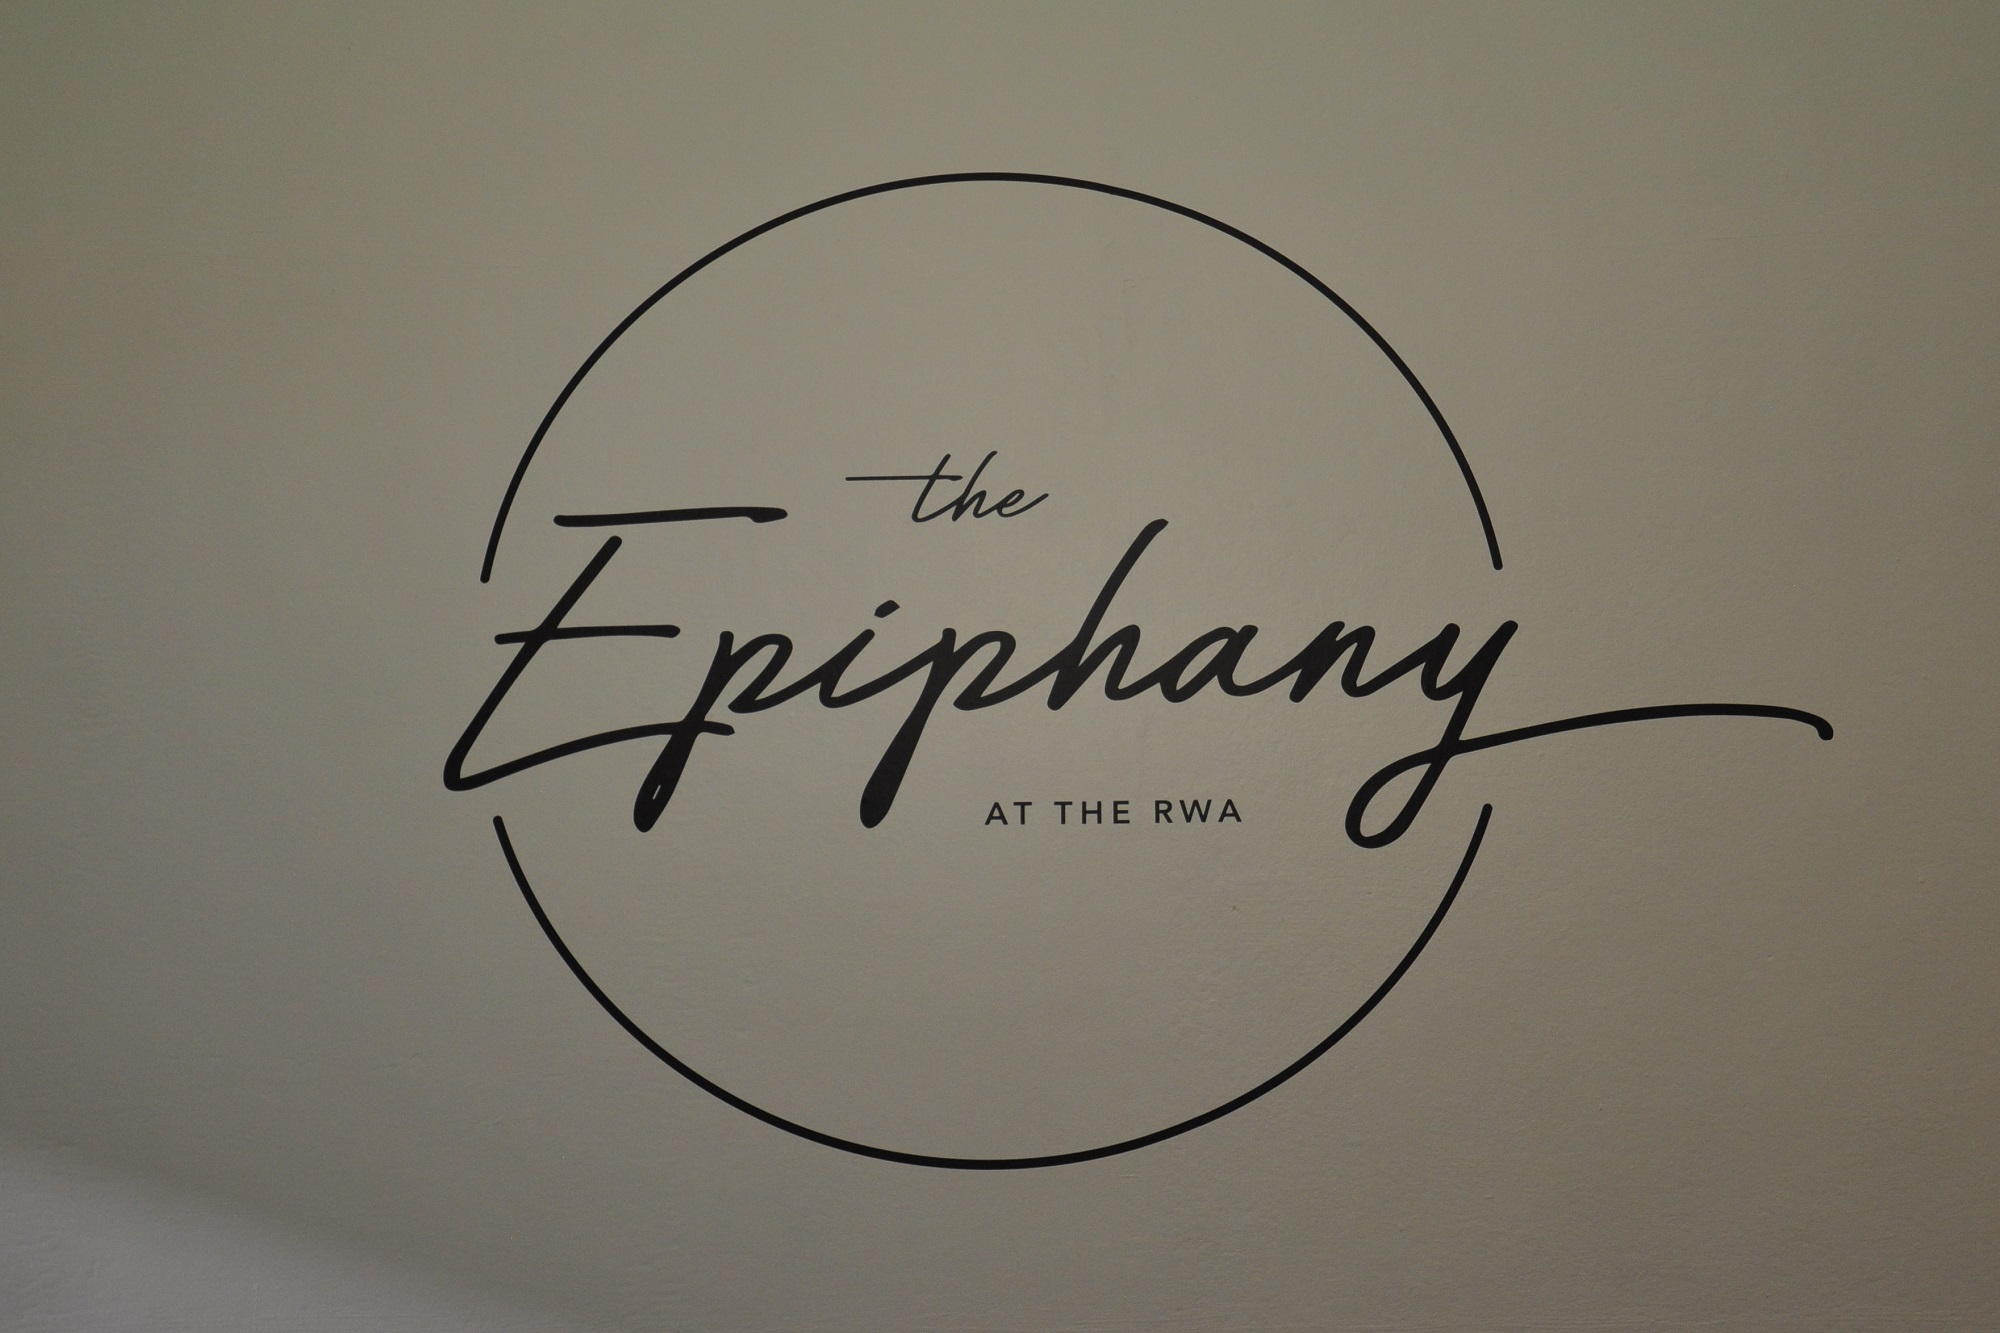 The logo of The Epiphany, a speciality coffee shop at the RWA in Bristol.